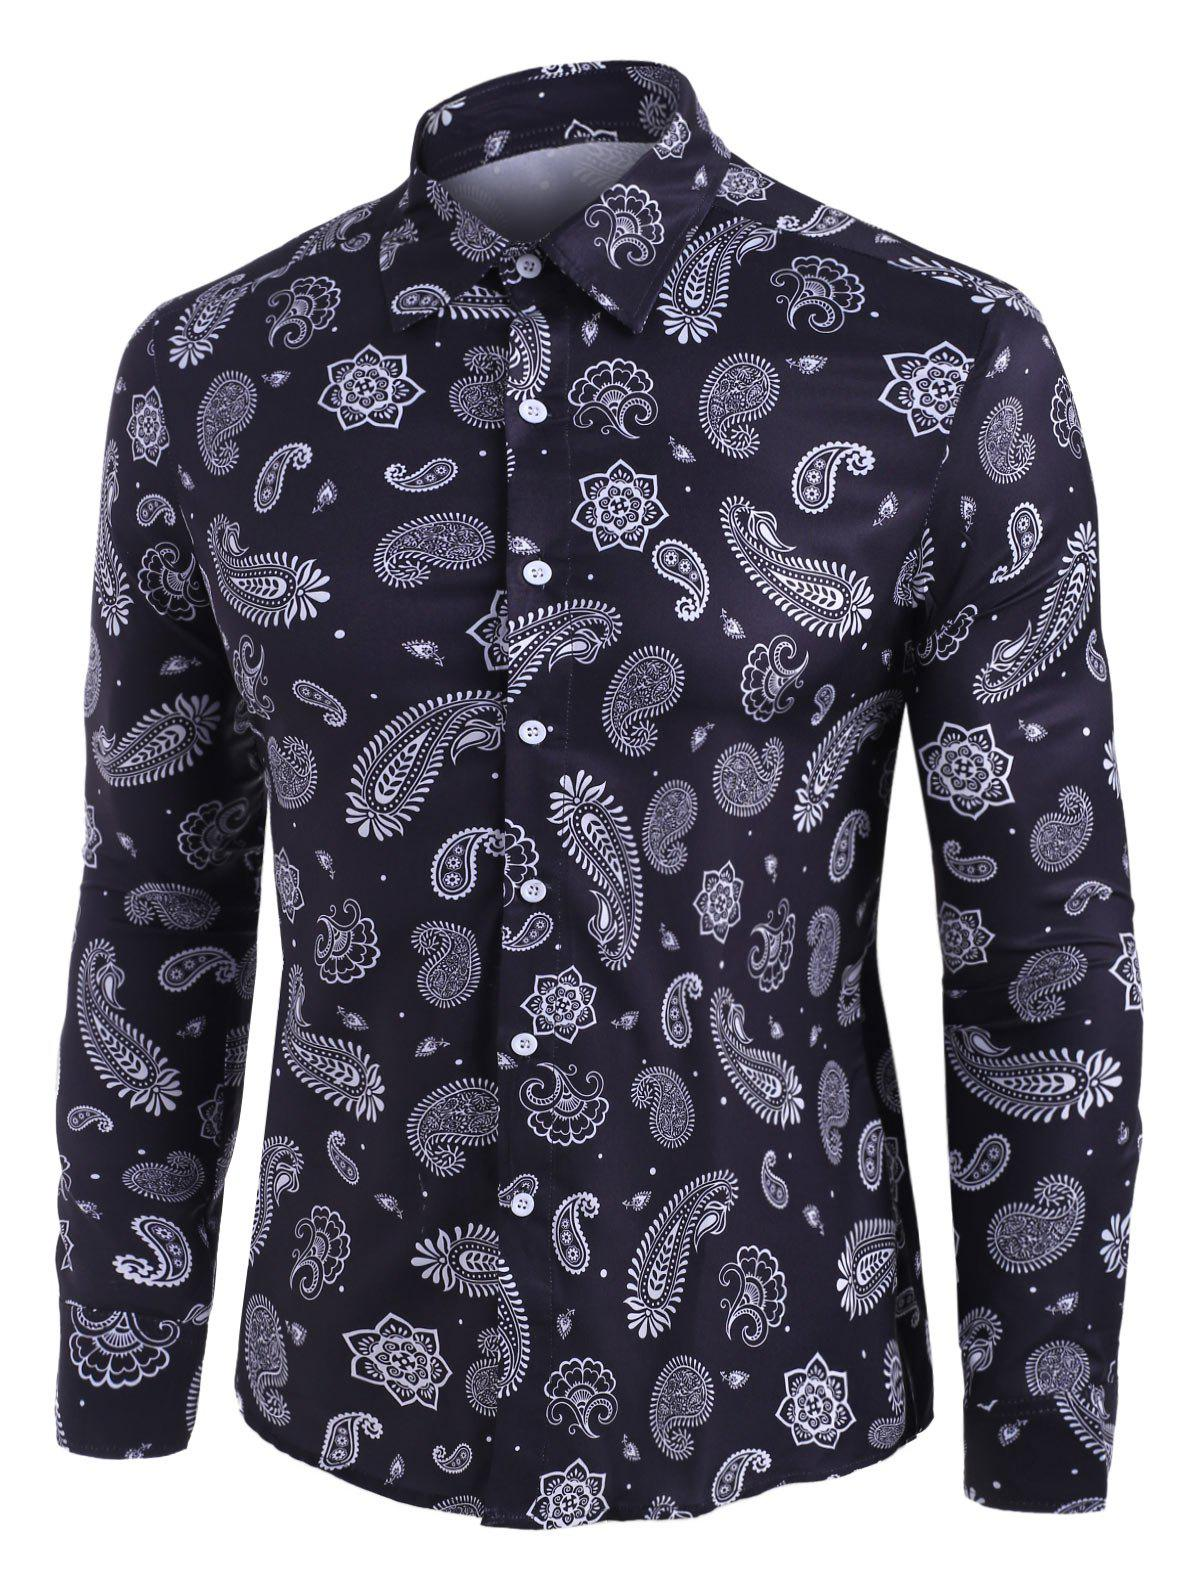 Paisley Print Long Sleeve Button Up Shirt - BLACK M